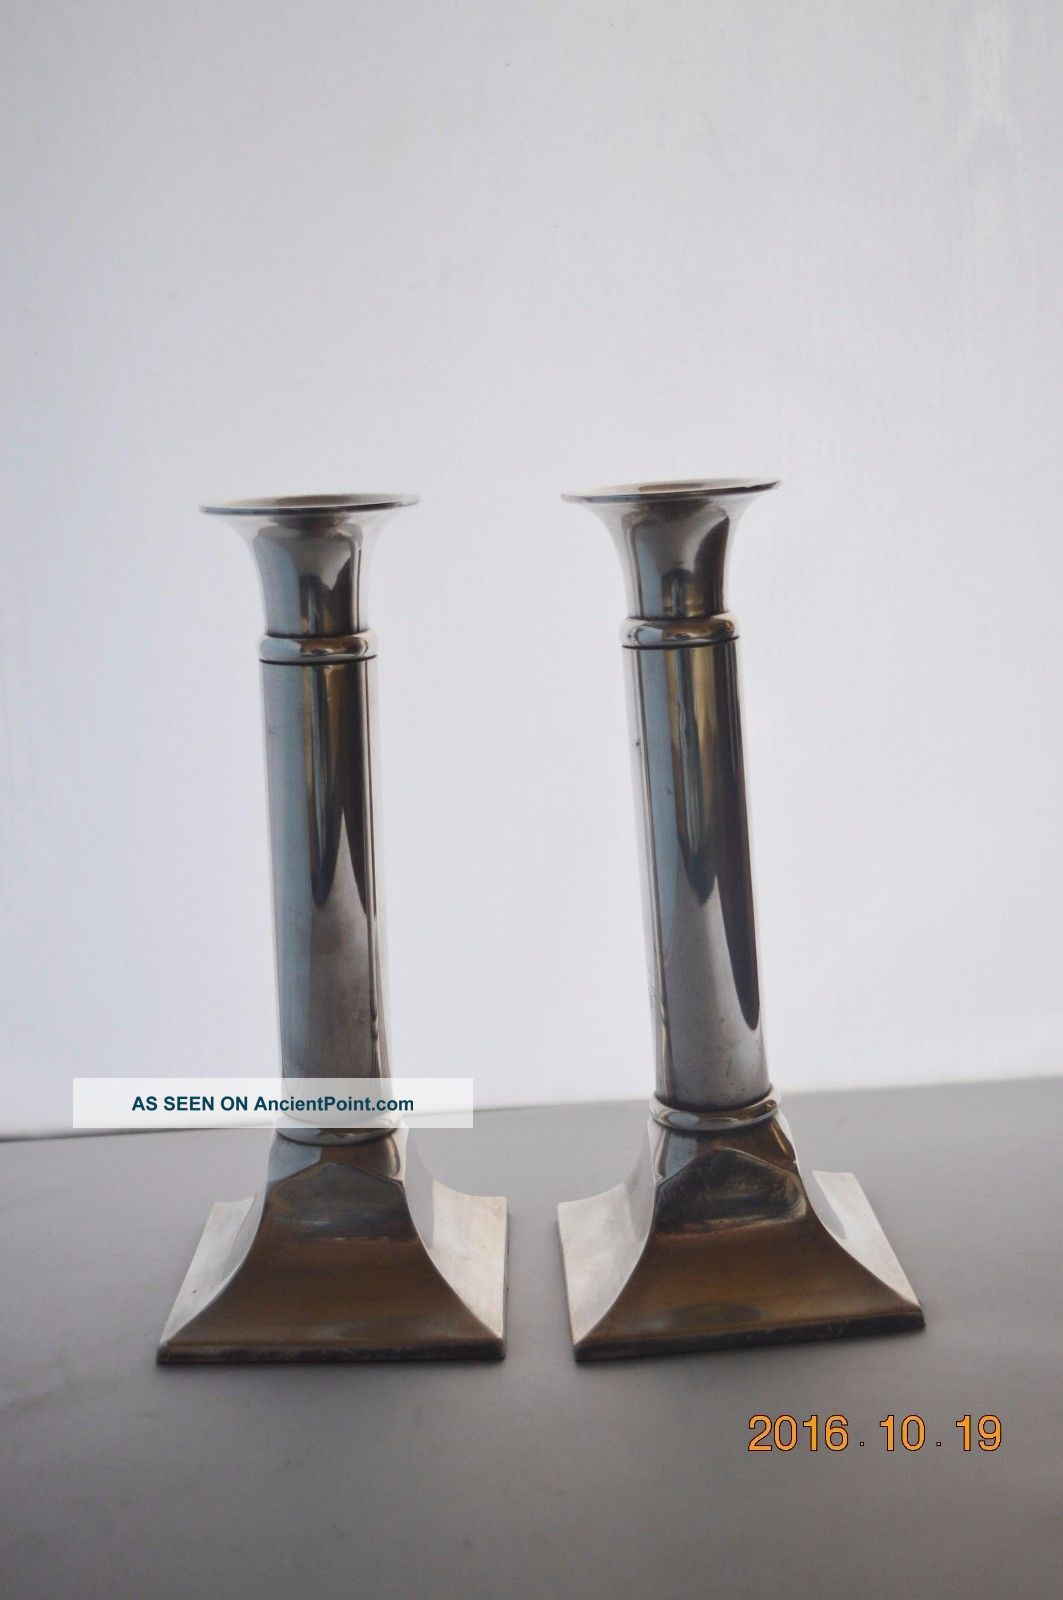 Matching Silver Candlesticks Parks Of London Shabbat Candlesticks Candlesticks & Candelabra photo